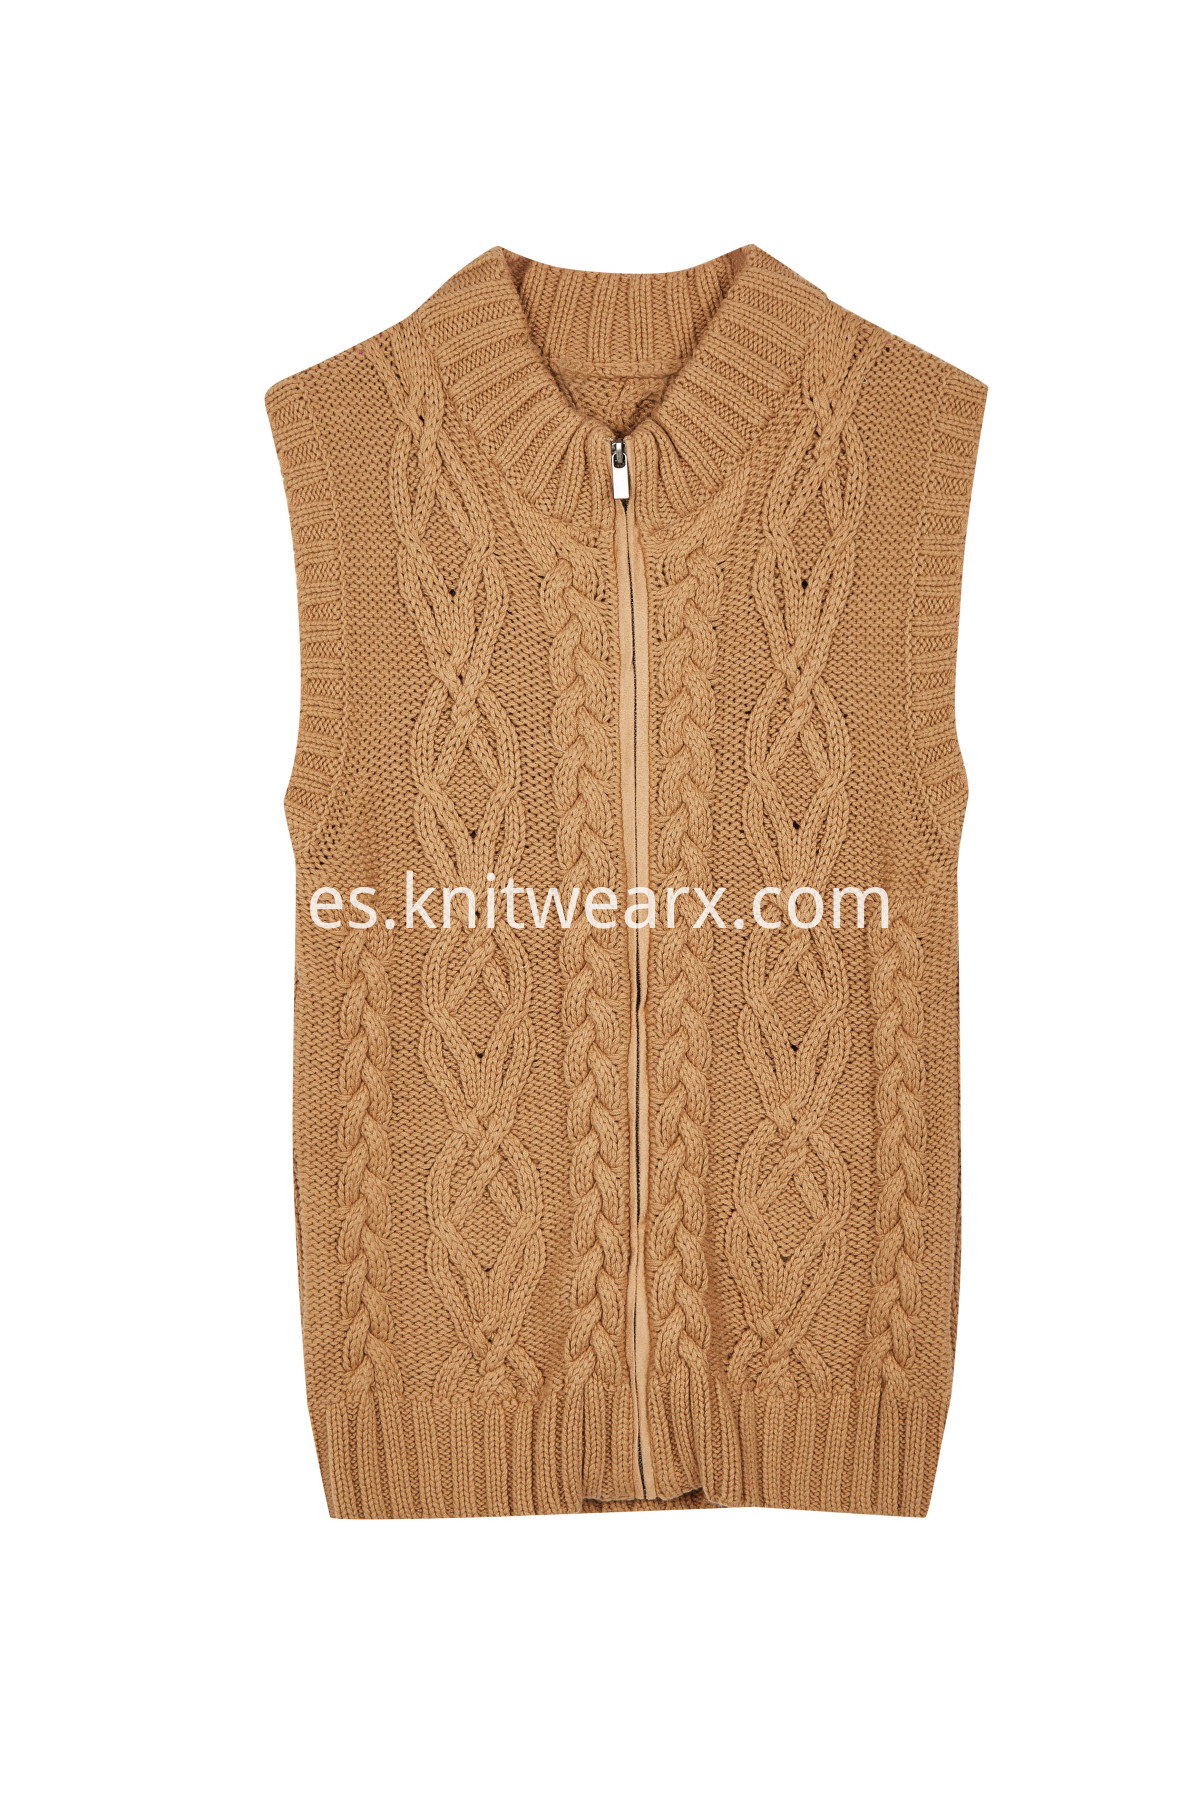 Women's Warm Sweater Vest Front Zip Cable Knit Cardigan Outwear